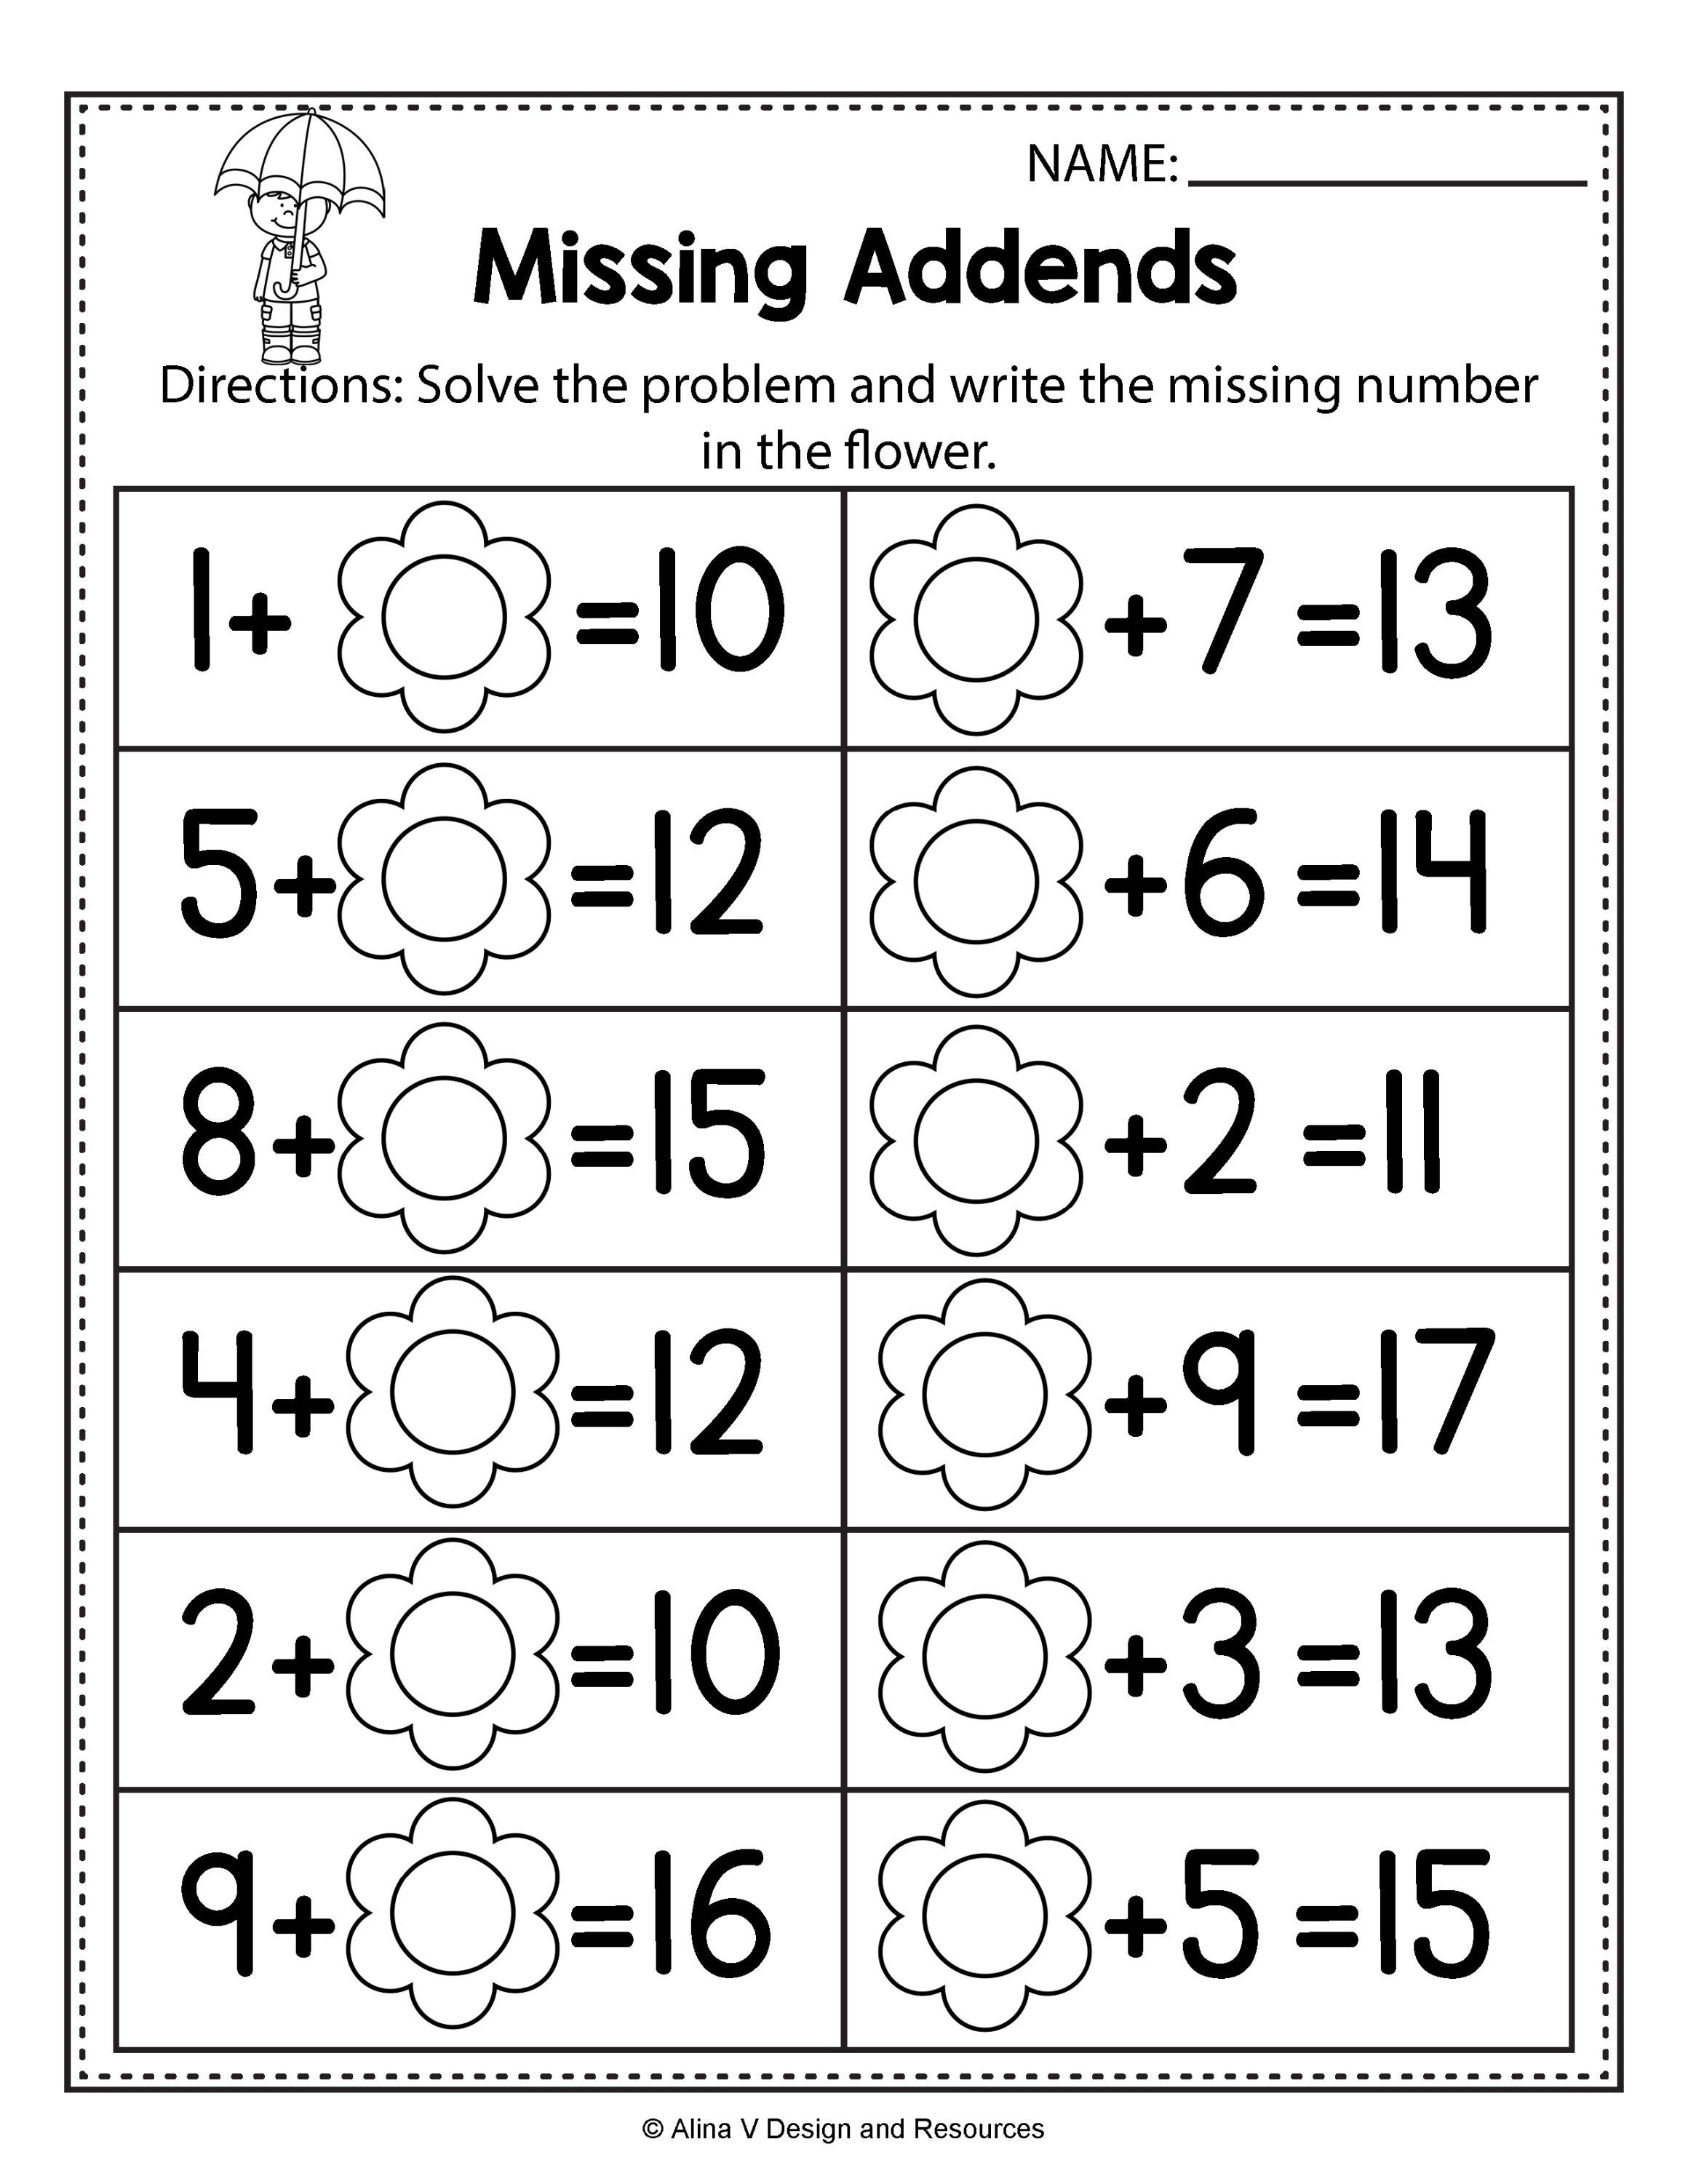 Download Free Alphabet Tracing Worksheets For Letter A To